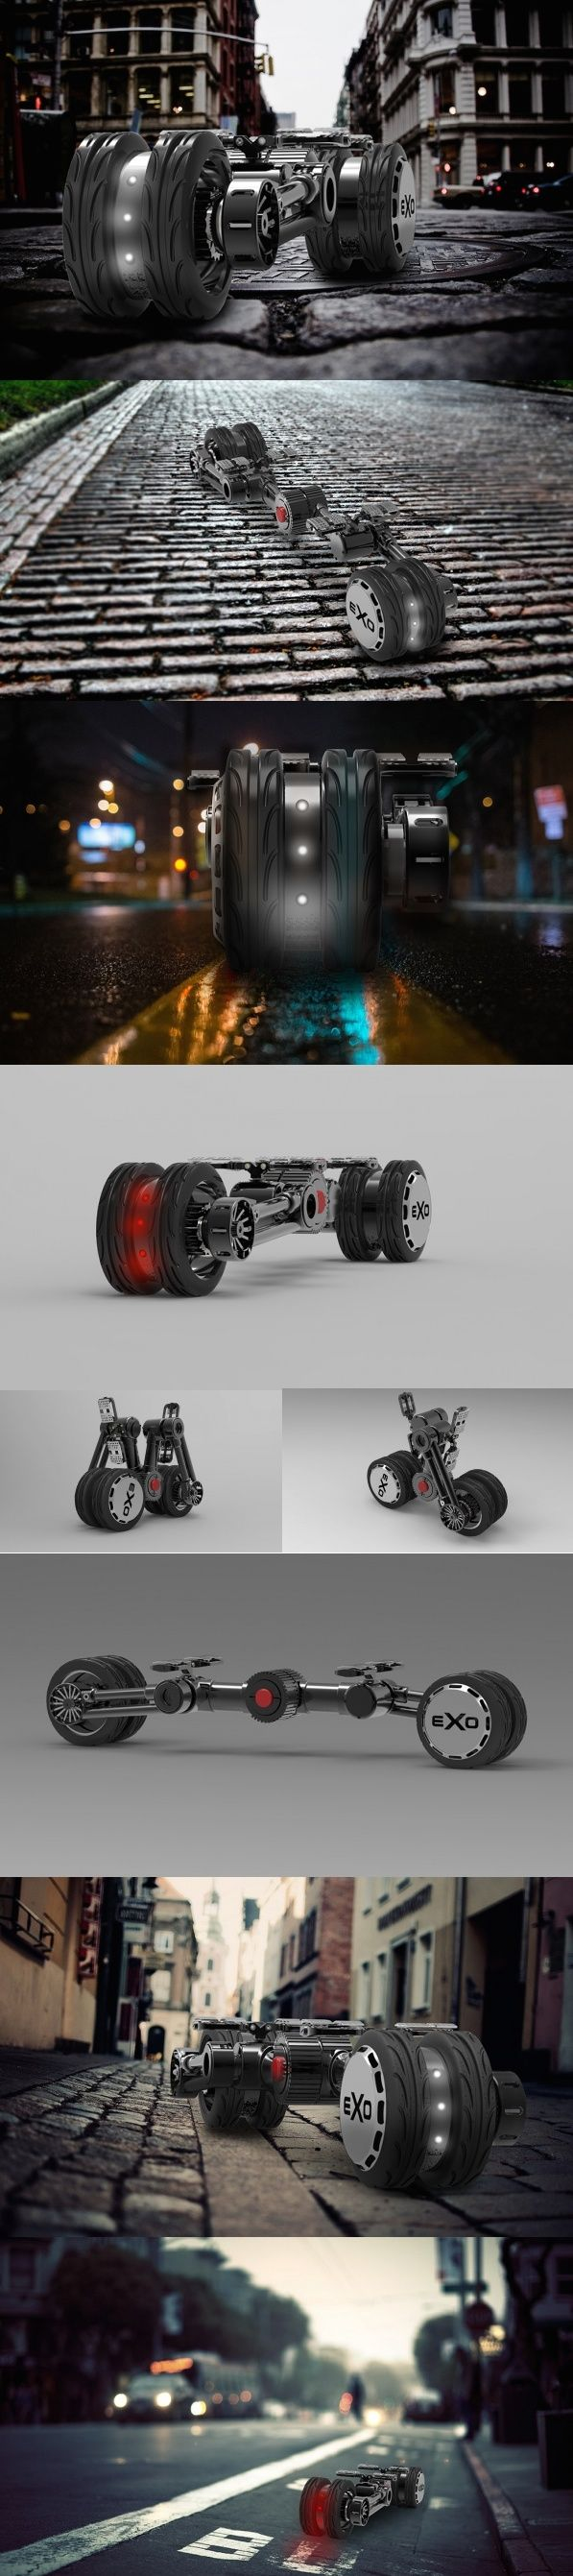 """EXO (an abbreviation of """"exoskeleton"""") denotes the aesthetic behind this E-Boards skeletal construction. Taking the interpretation of a personal electric skateboard and turning on its head, the board was designed with the intention of being the worlds first compactable electric skateboard that not only looks entirely unique, but also functions like no other. Transportation Bike Yankodesign #Technology #Swagnologies"""